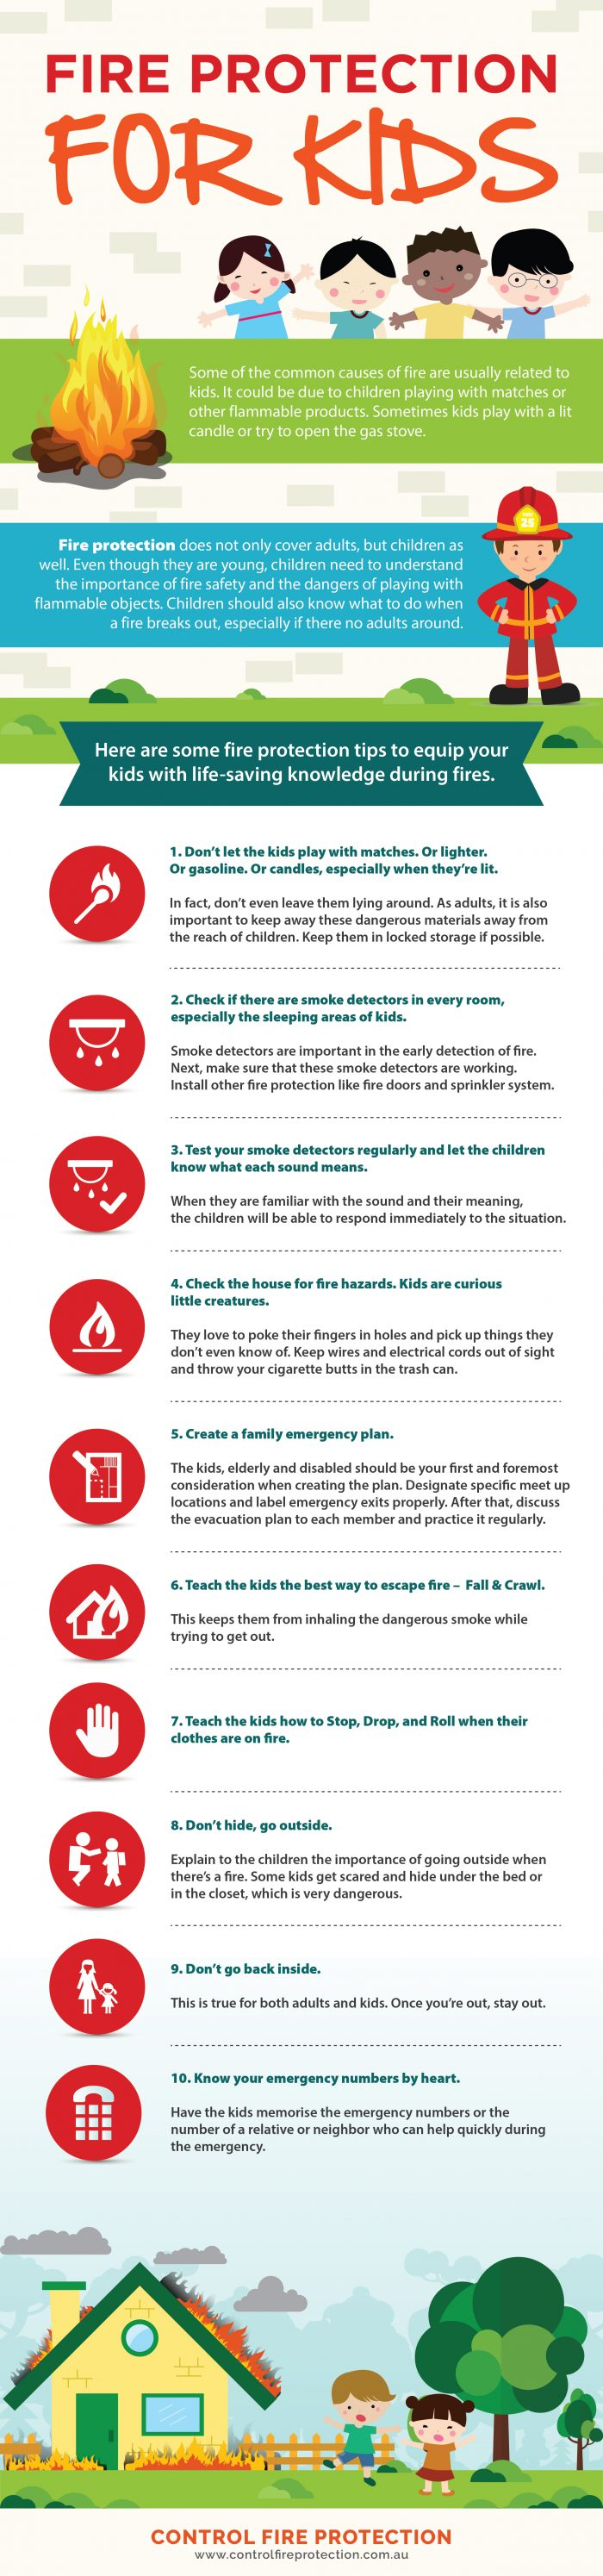 Fire Protection For Kids Infographic